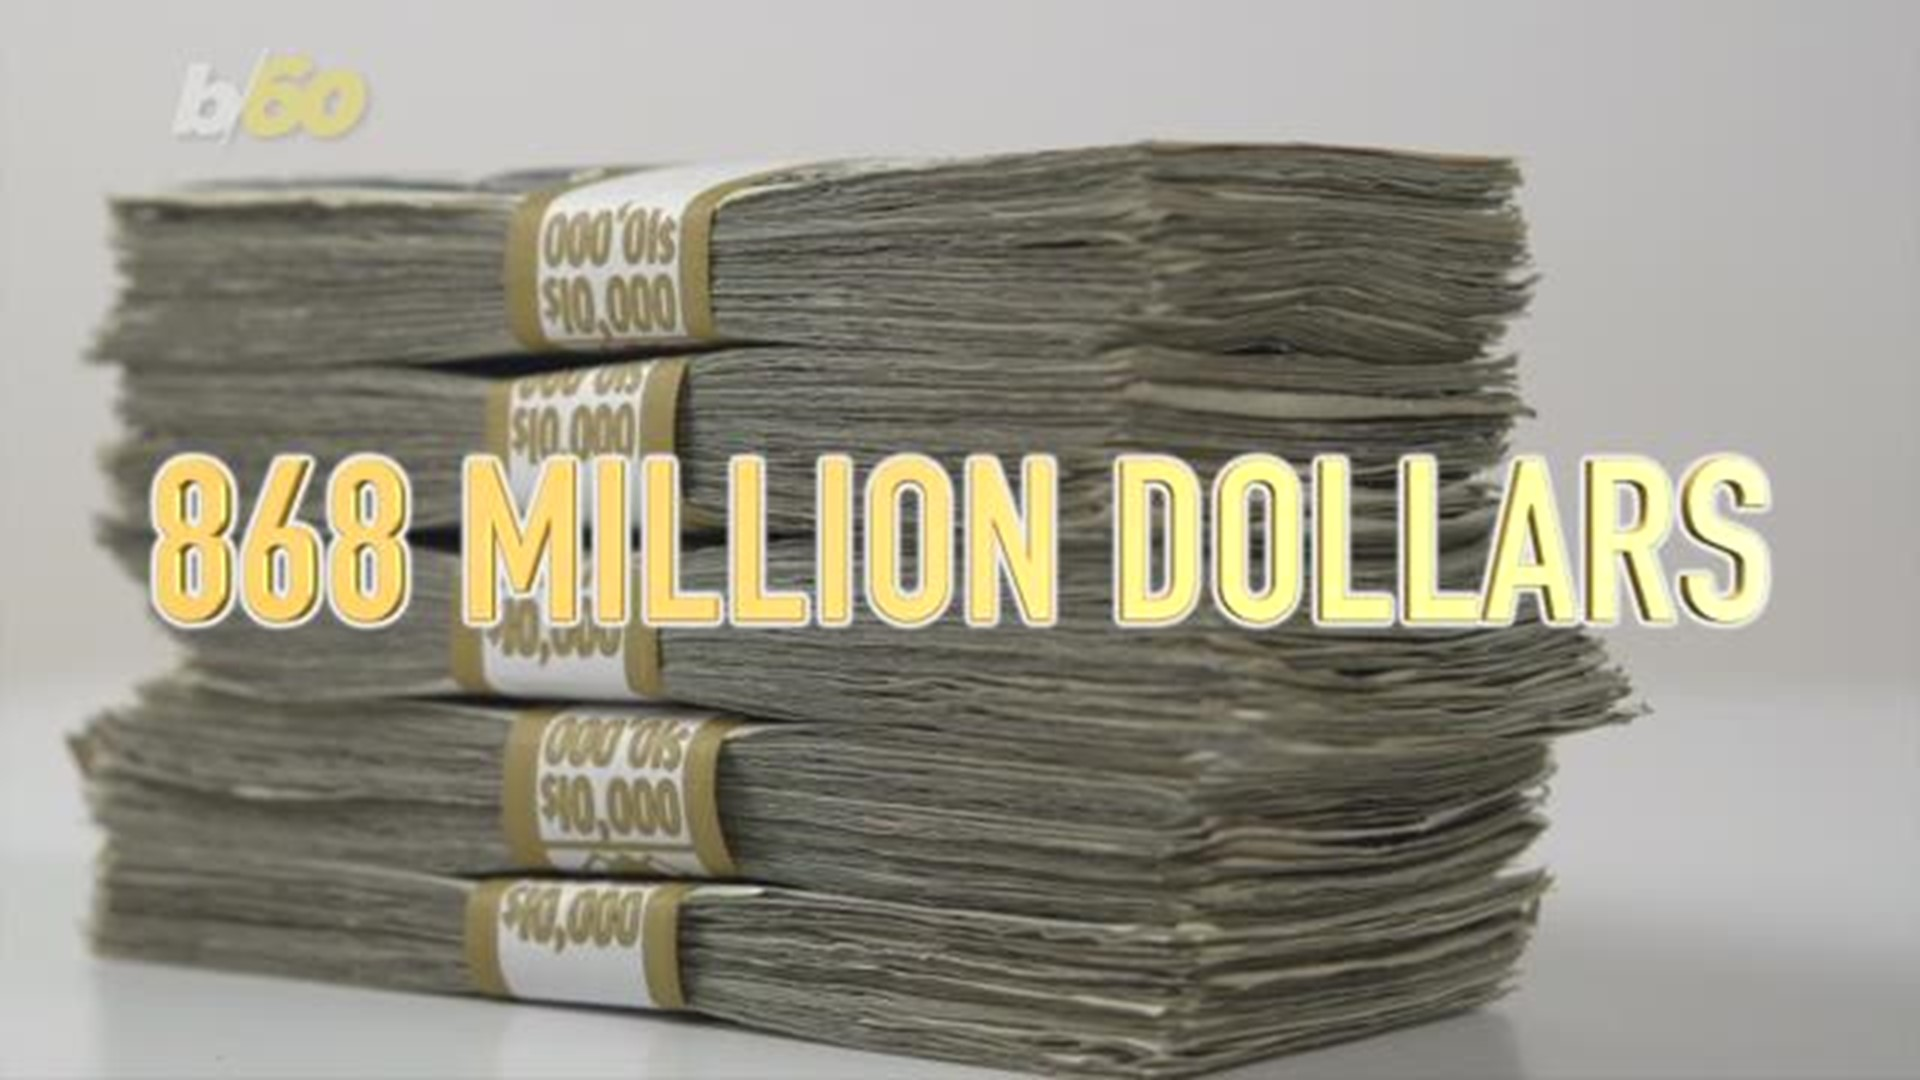 NC Lottery By The 'Lucky' Numbers   wfmynews2.com